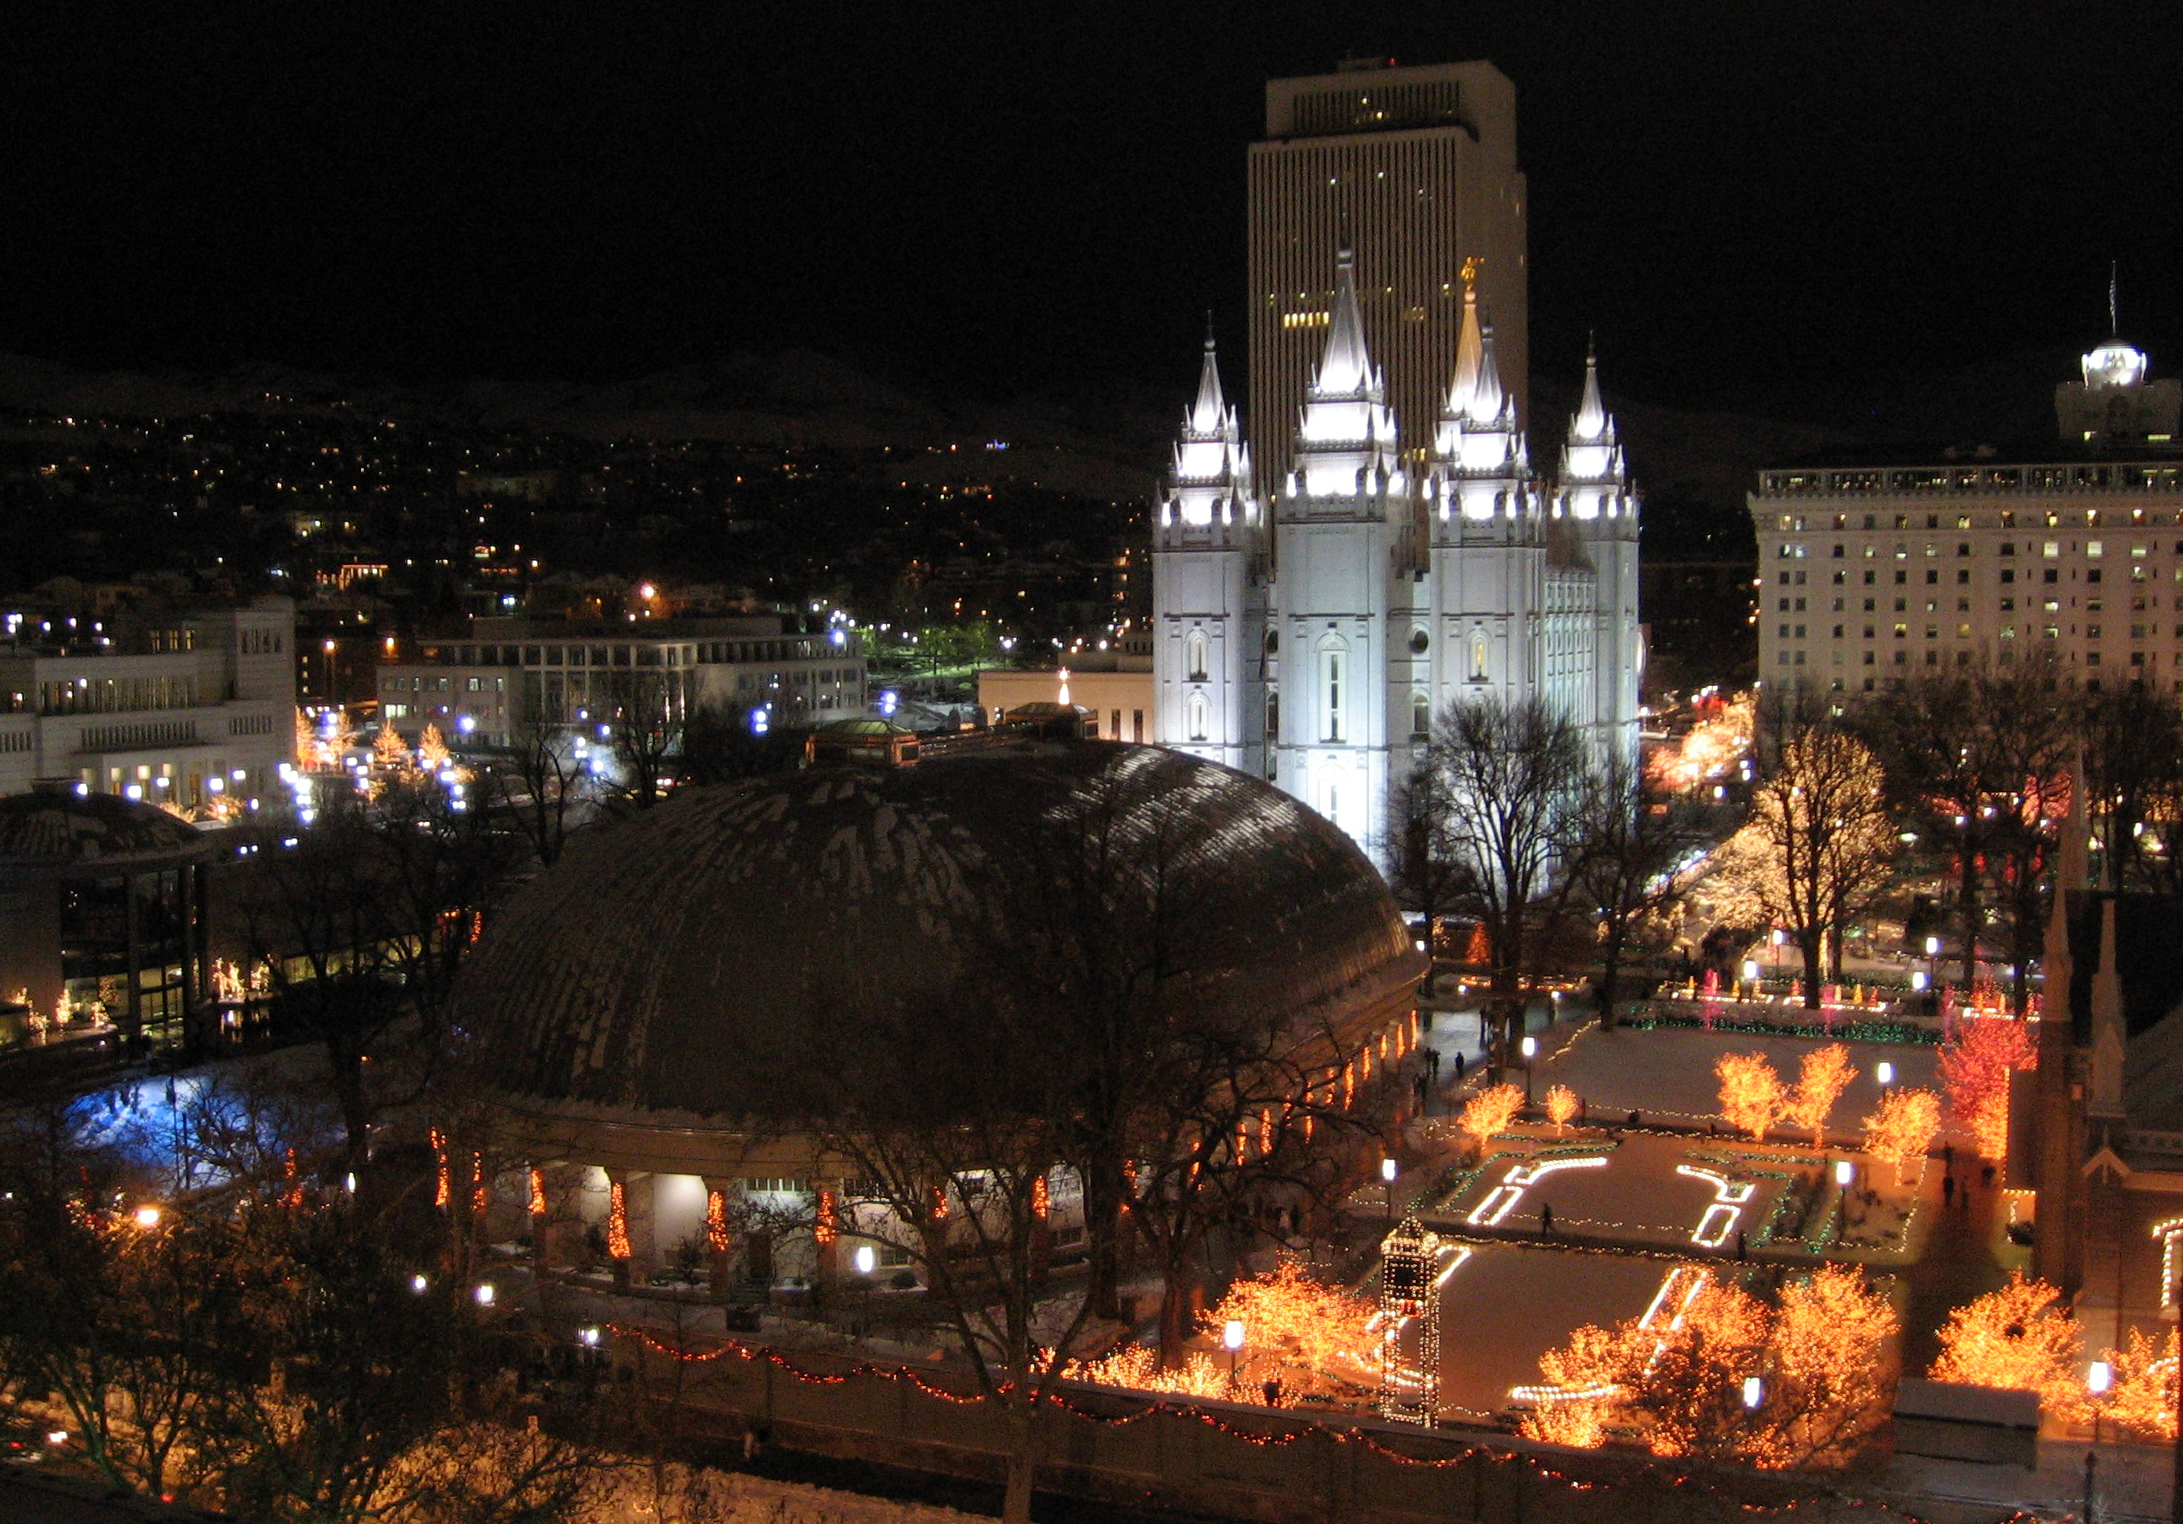 File:Salt Lake Temple Square at Christmas.jpg - Wikimedia Commons